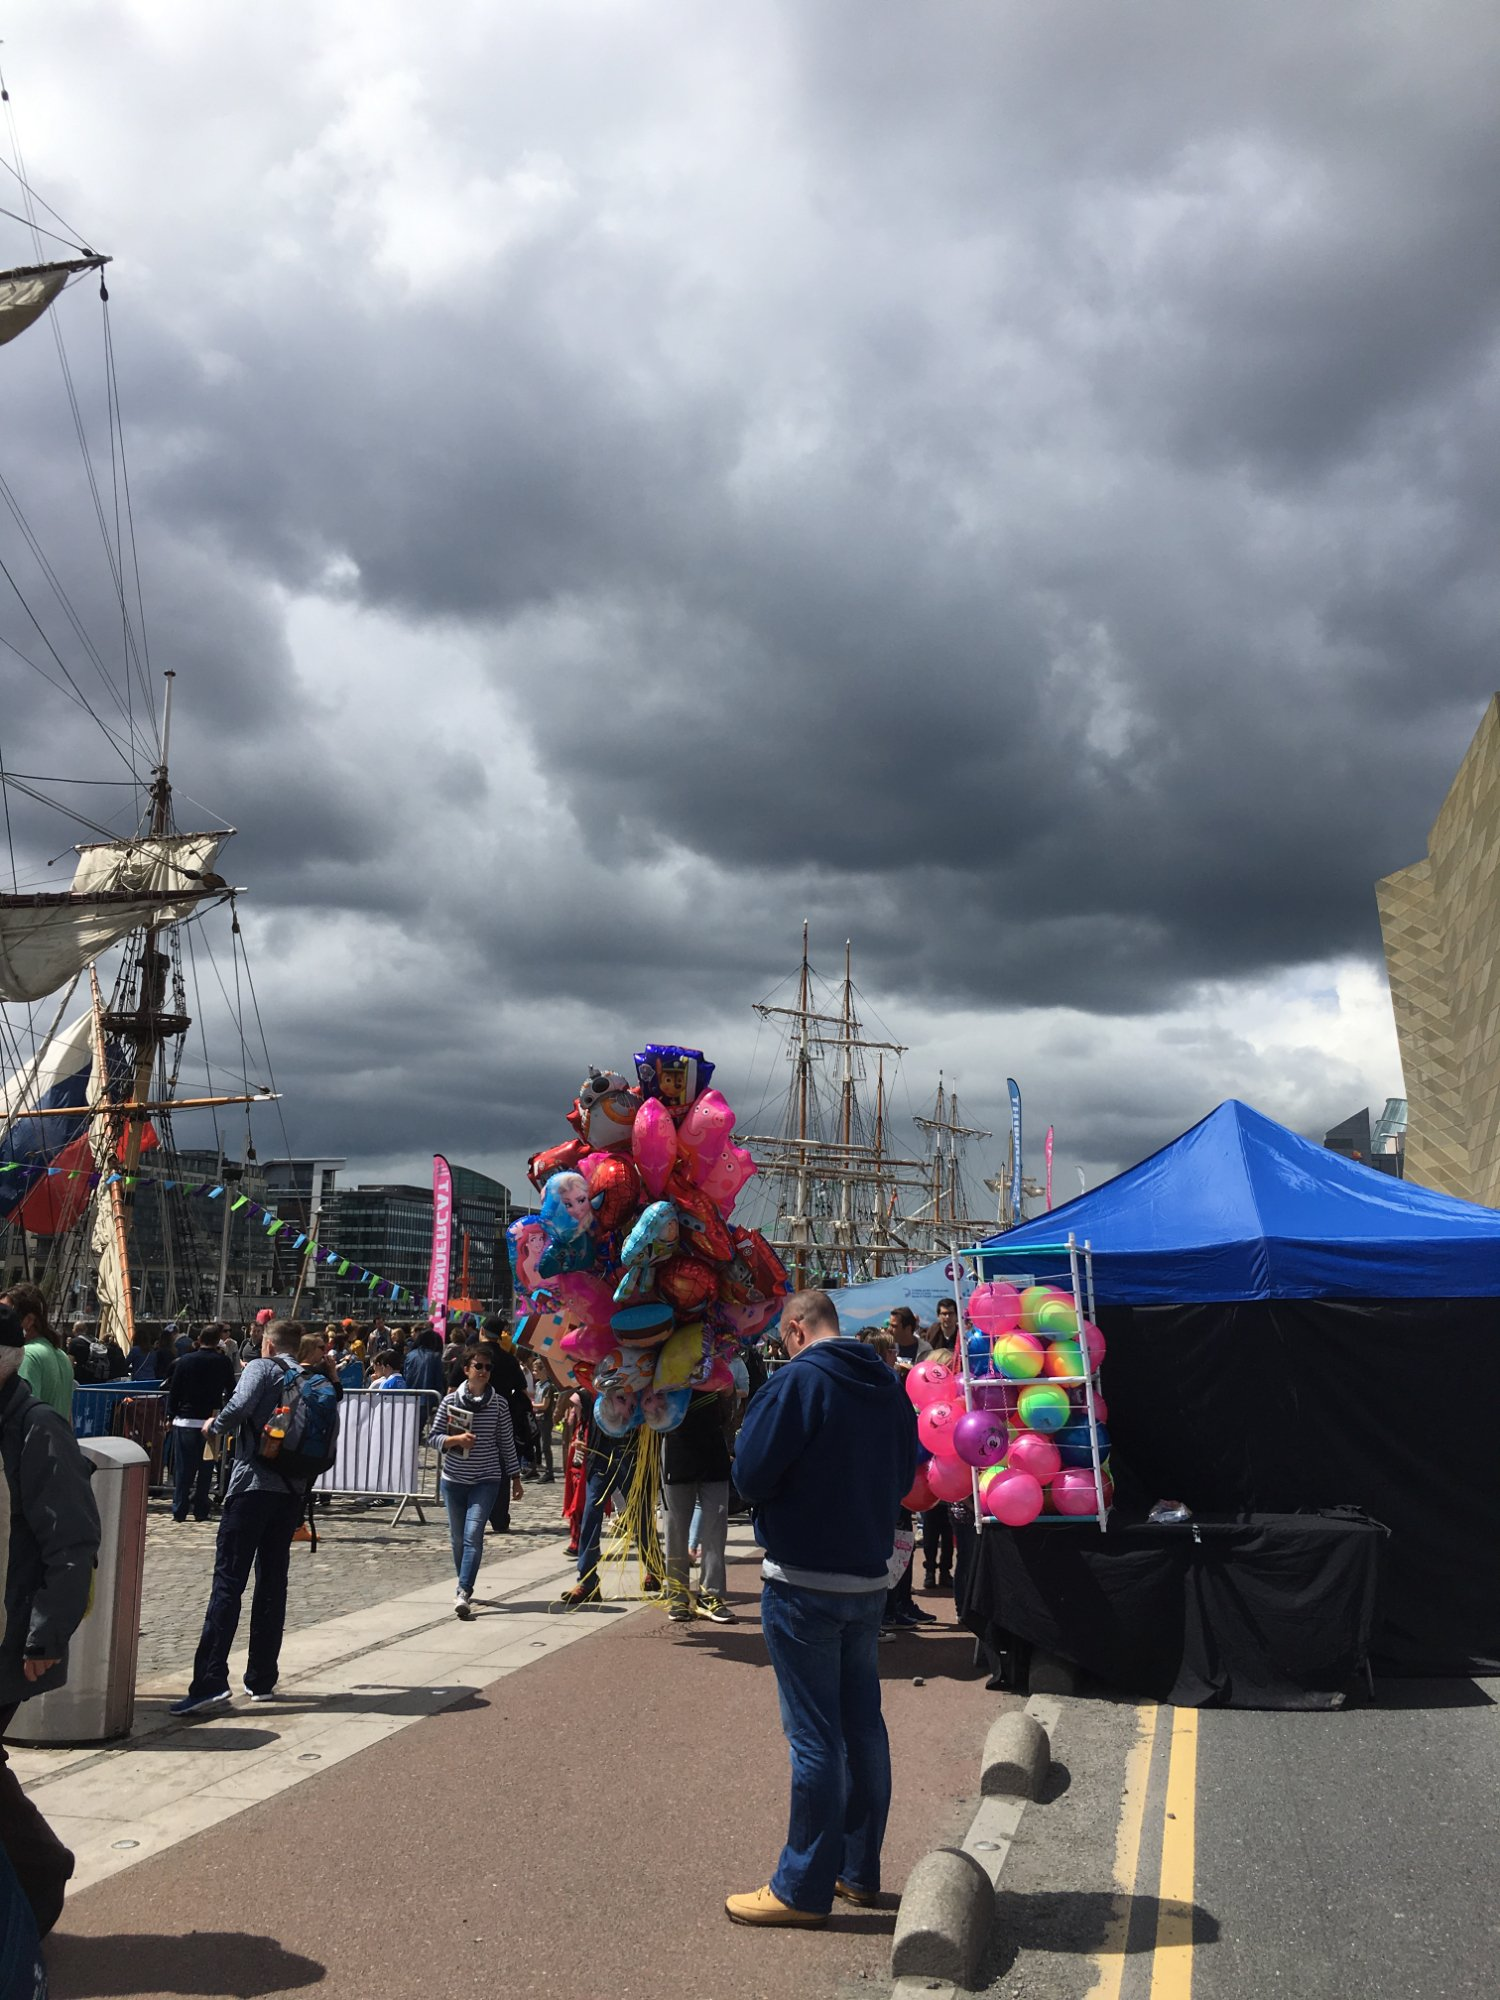 Ominous clouds over the bright festival